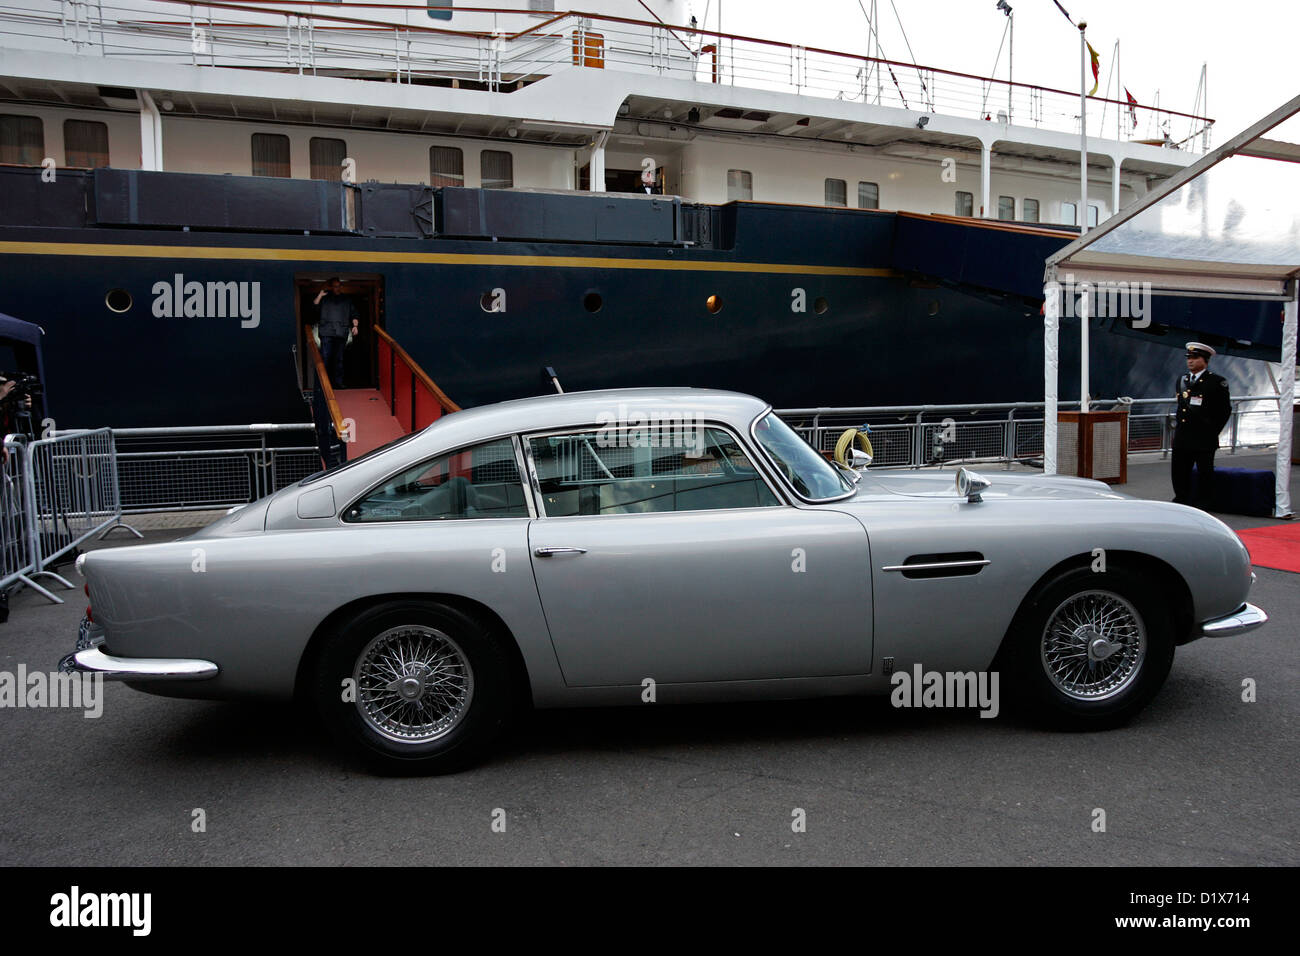 The original James Bond Aston Martin DB5 (sporting Swiss number plates) parked next to the Royal Yacht Britannia - Stock Image